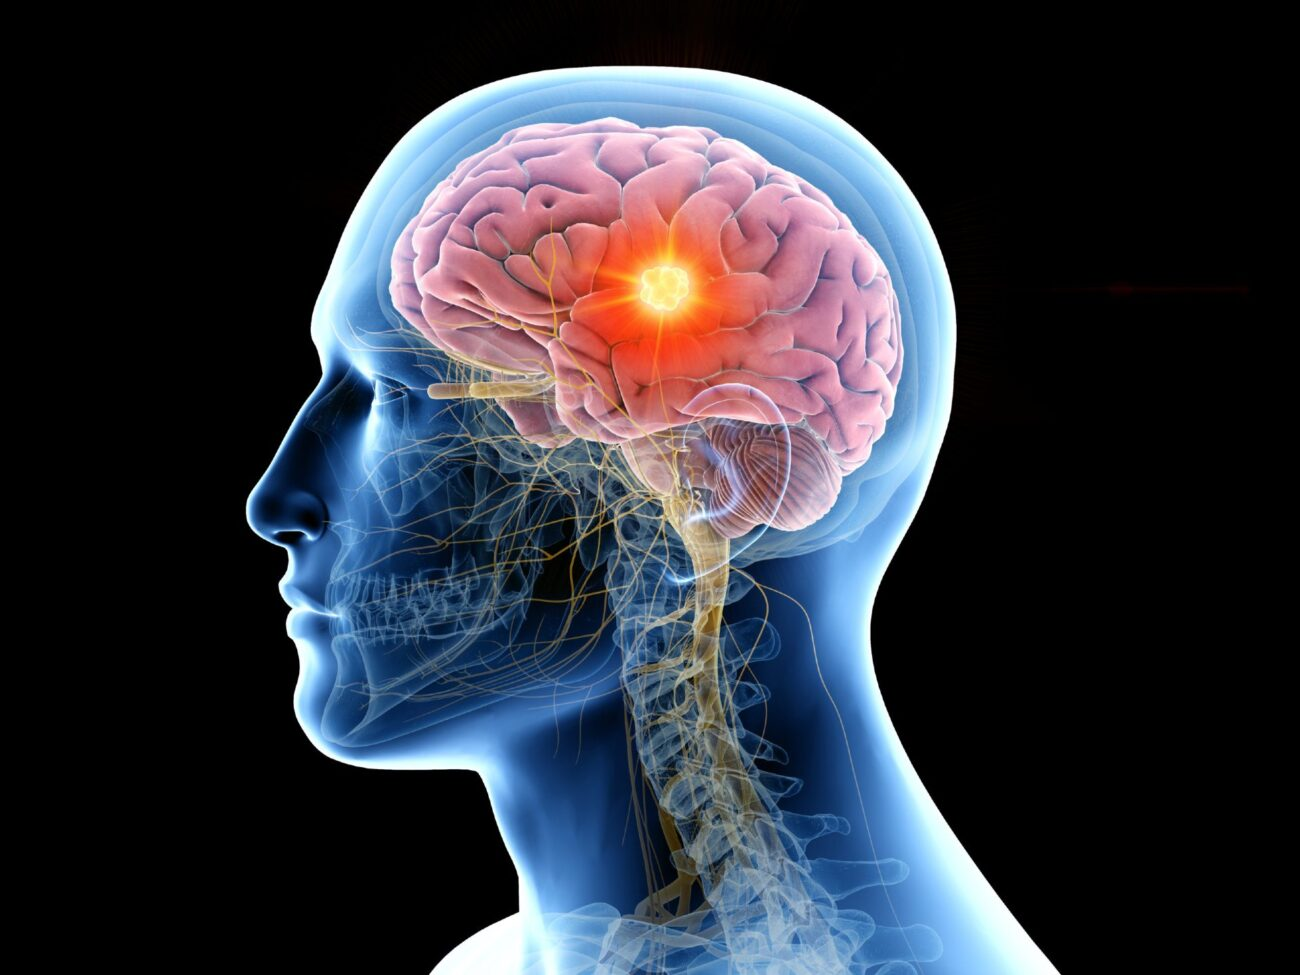 Executive function is a crucial part of the thinking process. Here's an overview of how executive function works.